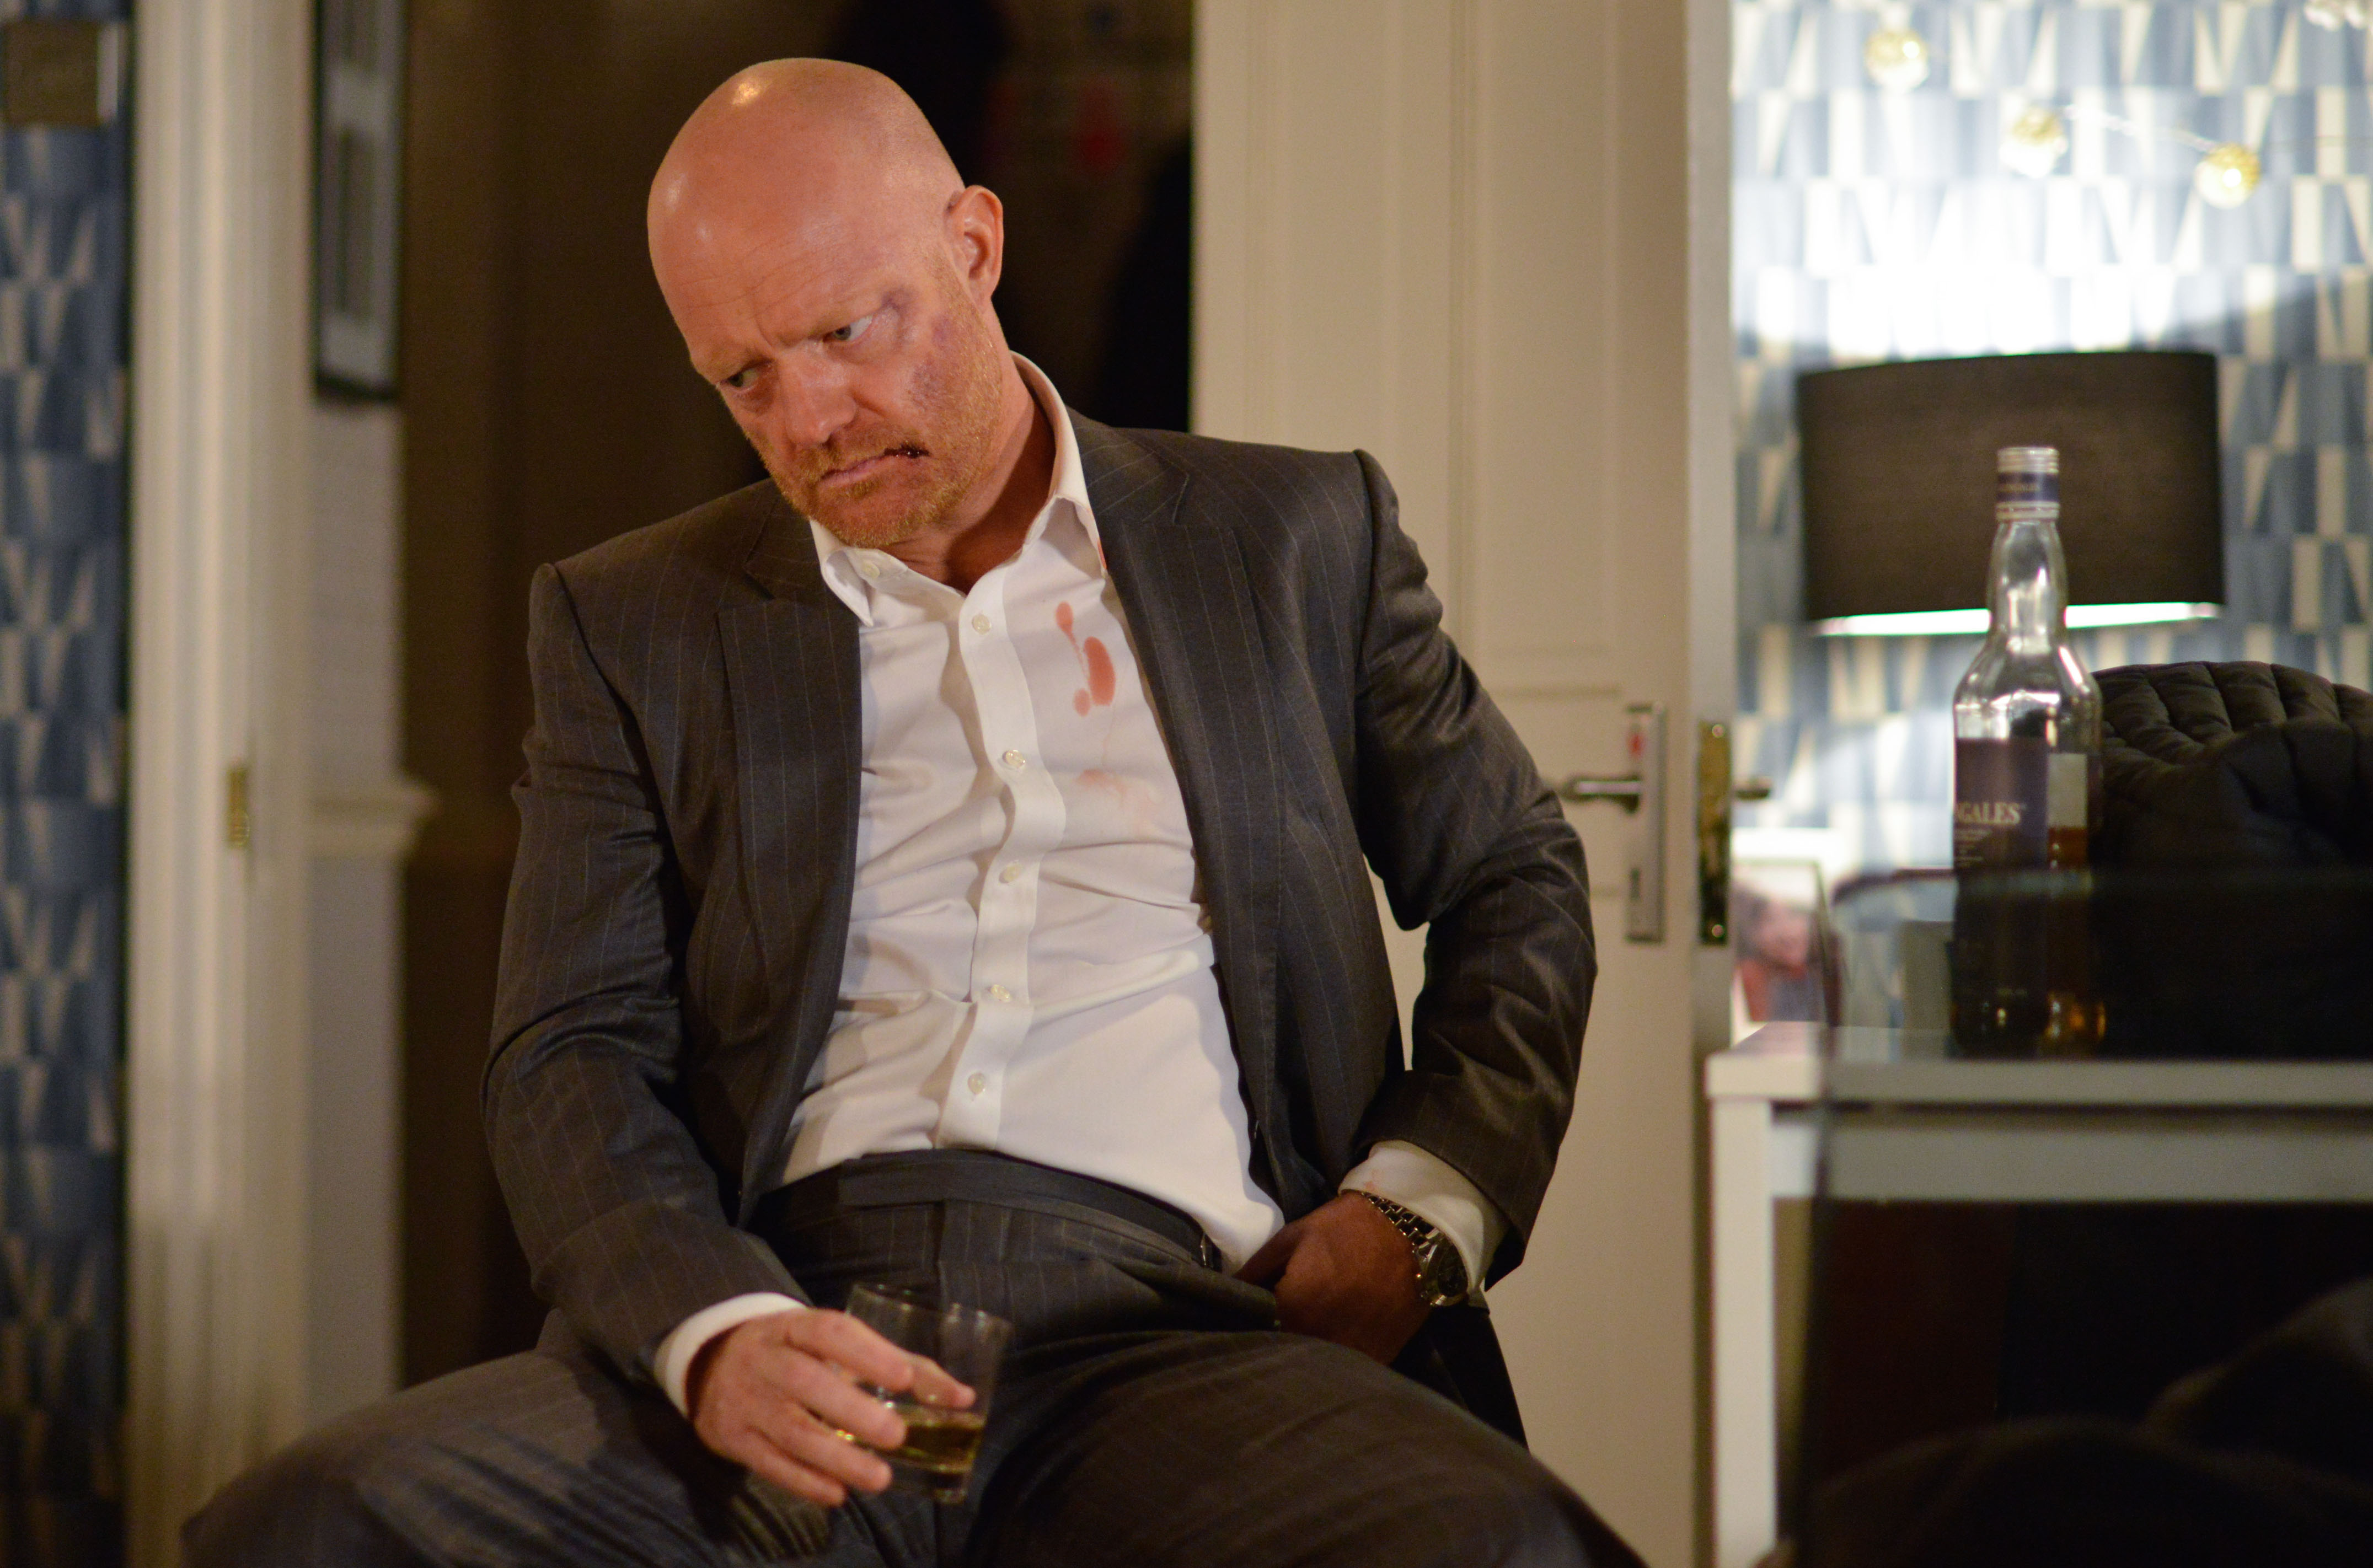 WARNING: Embargoed for publication until 00:00:01 on 08/12/2017 - Programme Name: EastEnders - October-December 2017 - TX: 07/12/2017 - Episode: EastEnders - October-December 2017 - 5611 (No. 5611) - Picture Shows: Max pours himself a drink while Jack, Lauren and Abi try to understand what he's done. Max Branning (JAKE WOOD) - (C) BBC - Photographer: Kieron McCarron